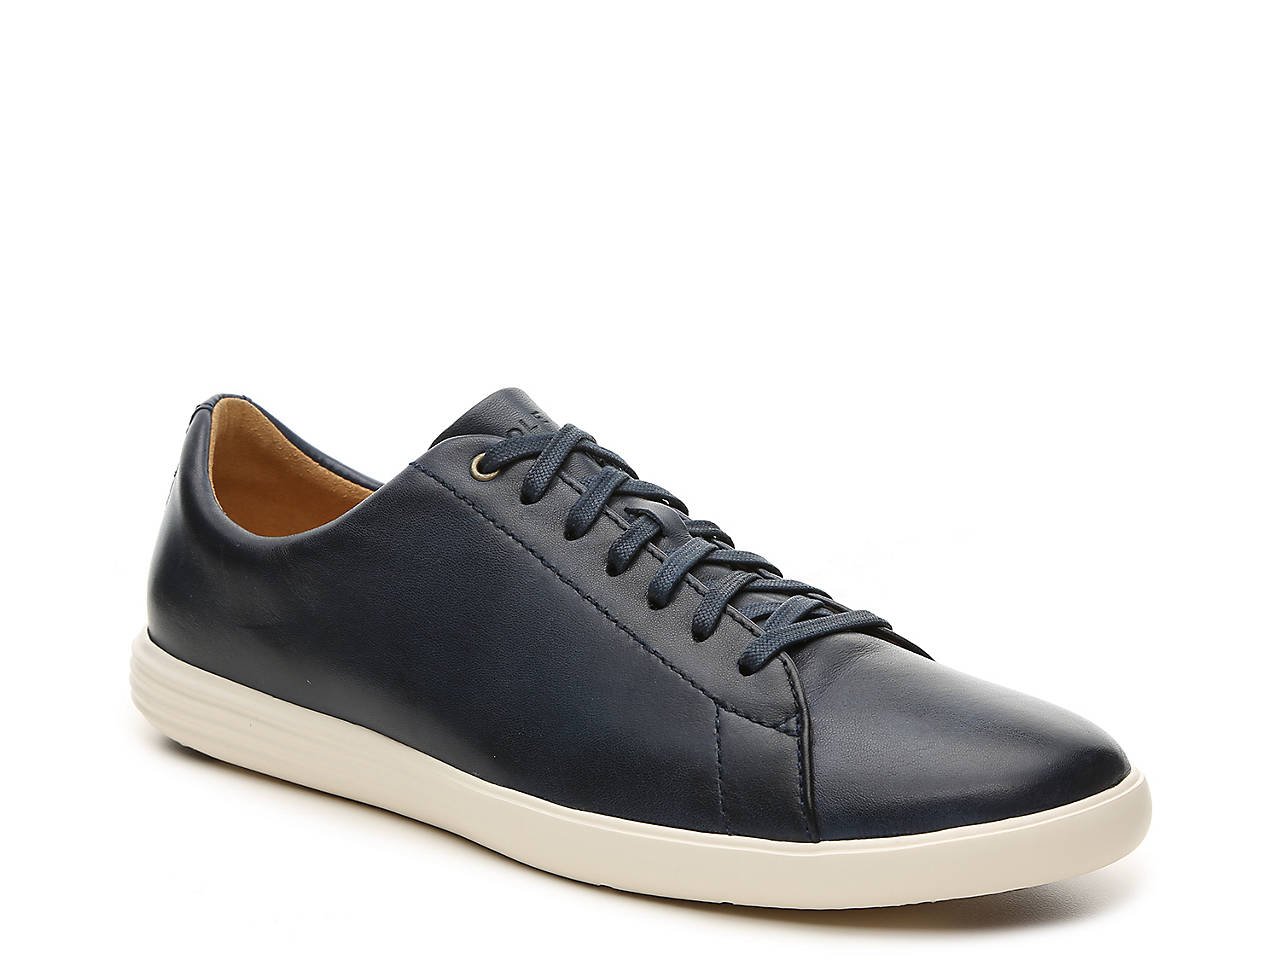 Cole Haan Men/'s Grand Crosscourt Fashion Casual Sneakers Shoes